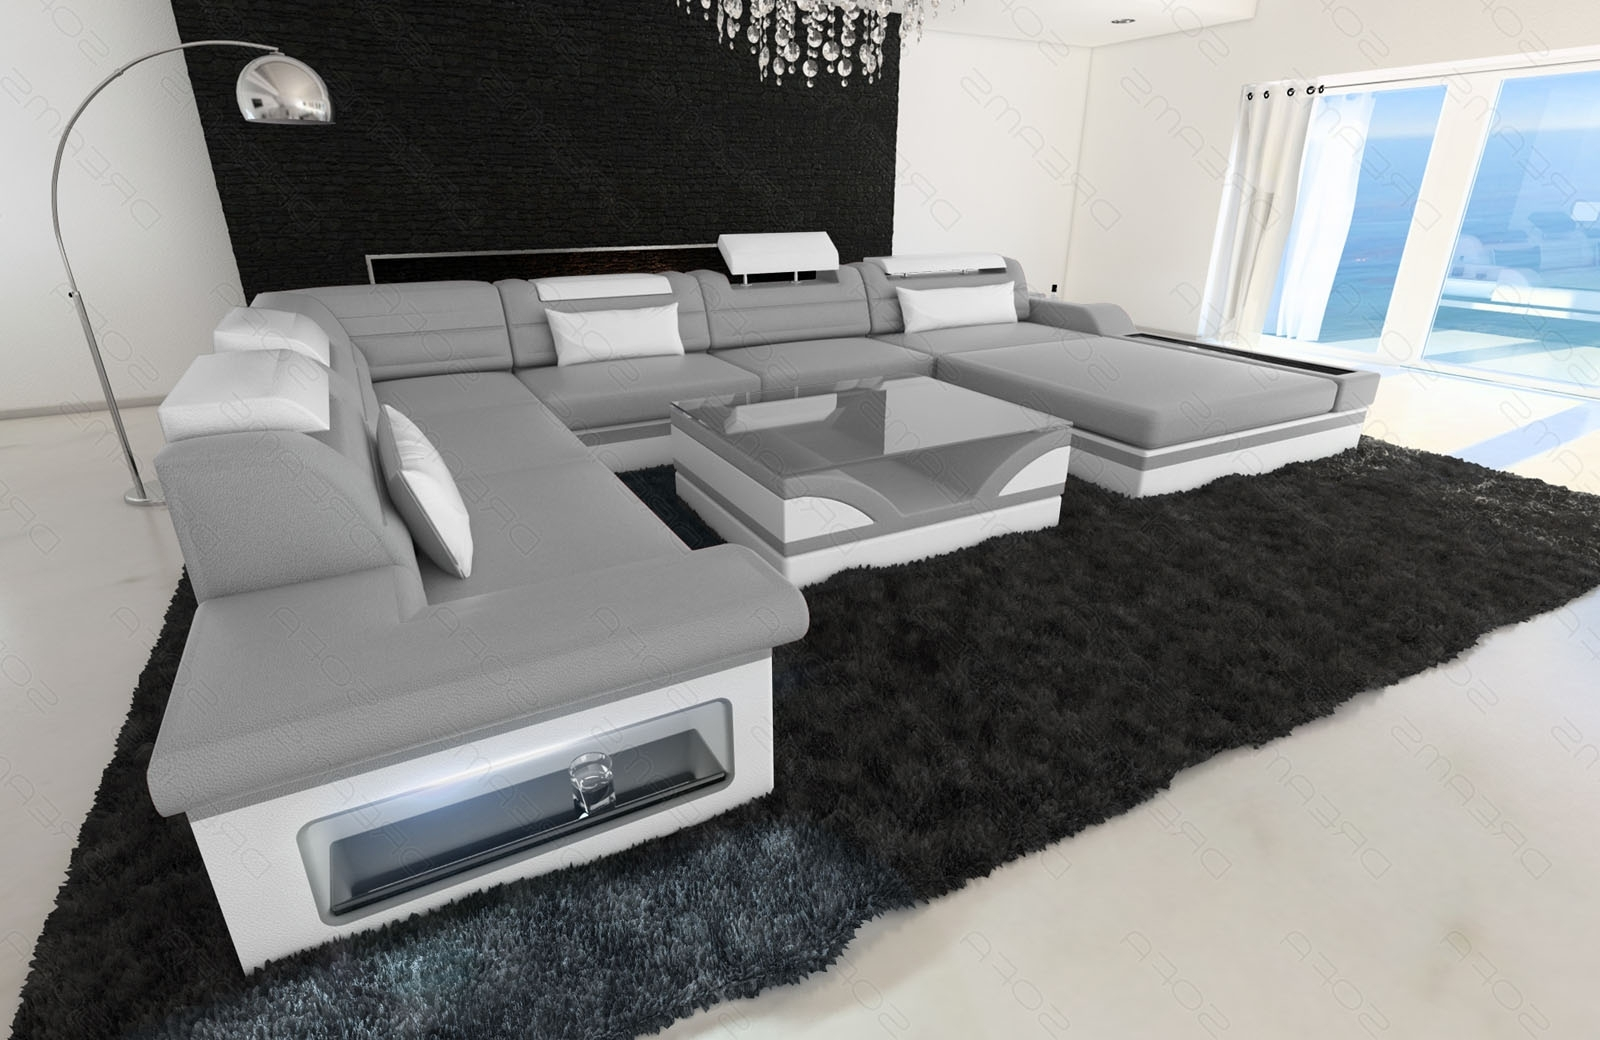 Sofa Mezzo Xxl With Led Lights Genuine Leather Luxury Design In Preferred Luxury Sectional Sofas (View 16 of 20)